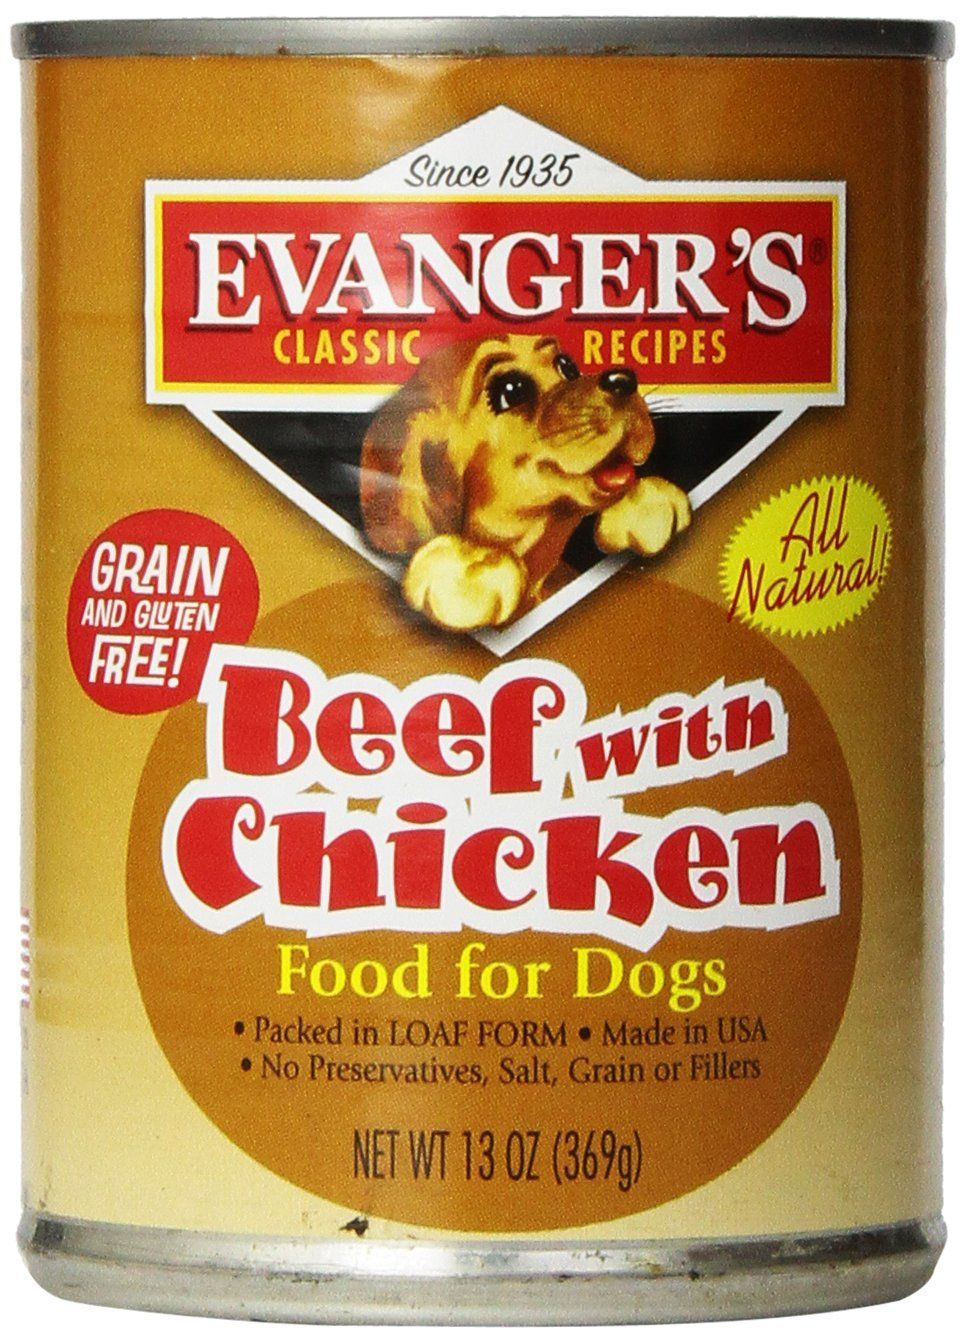 Evangers 12pack natural classic beef with chicken